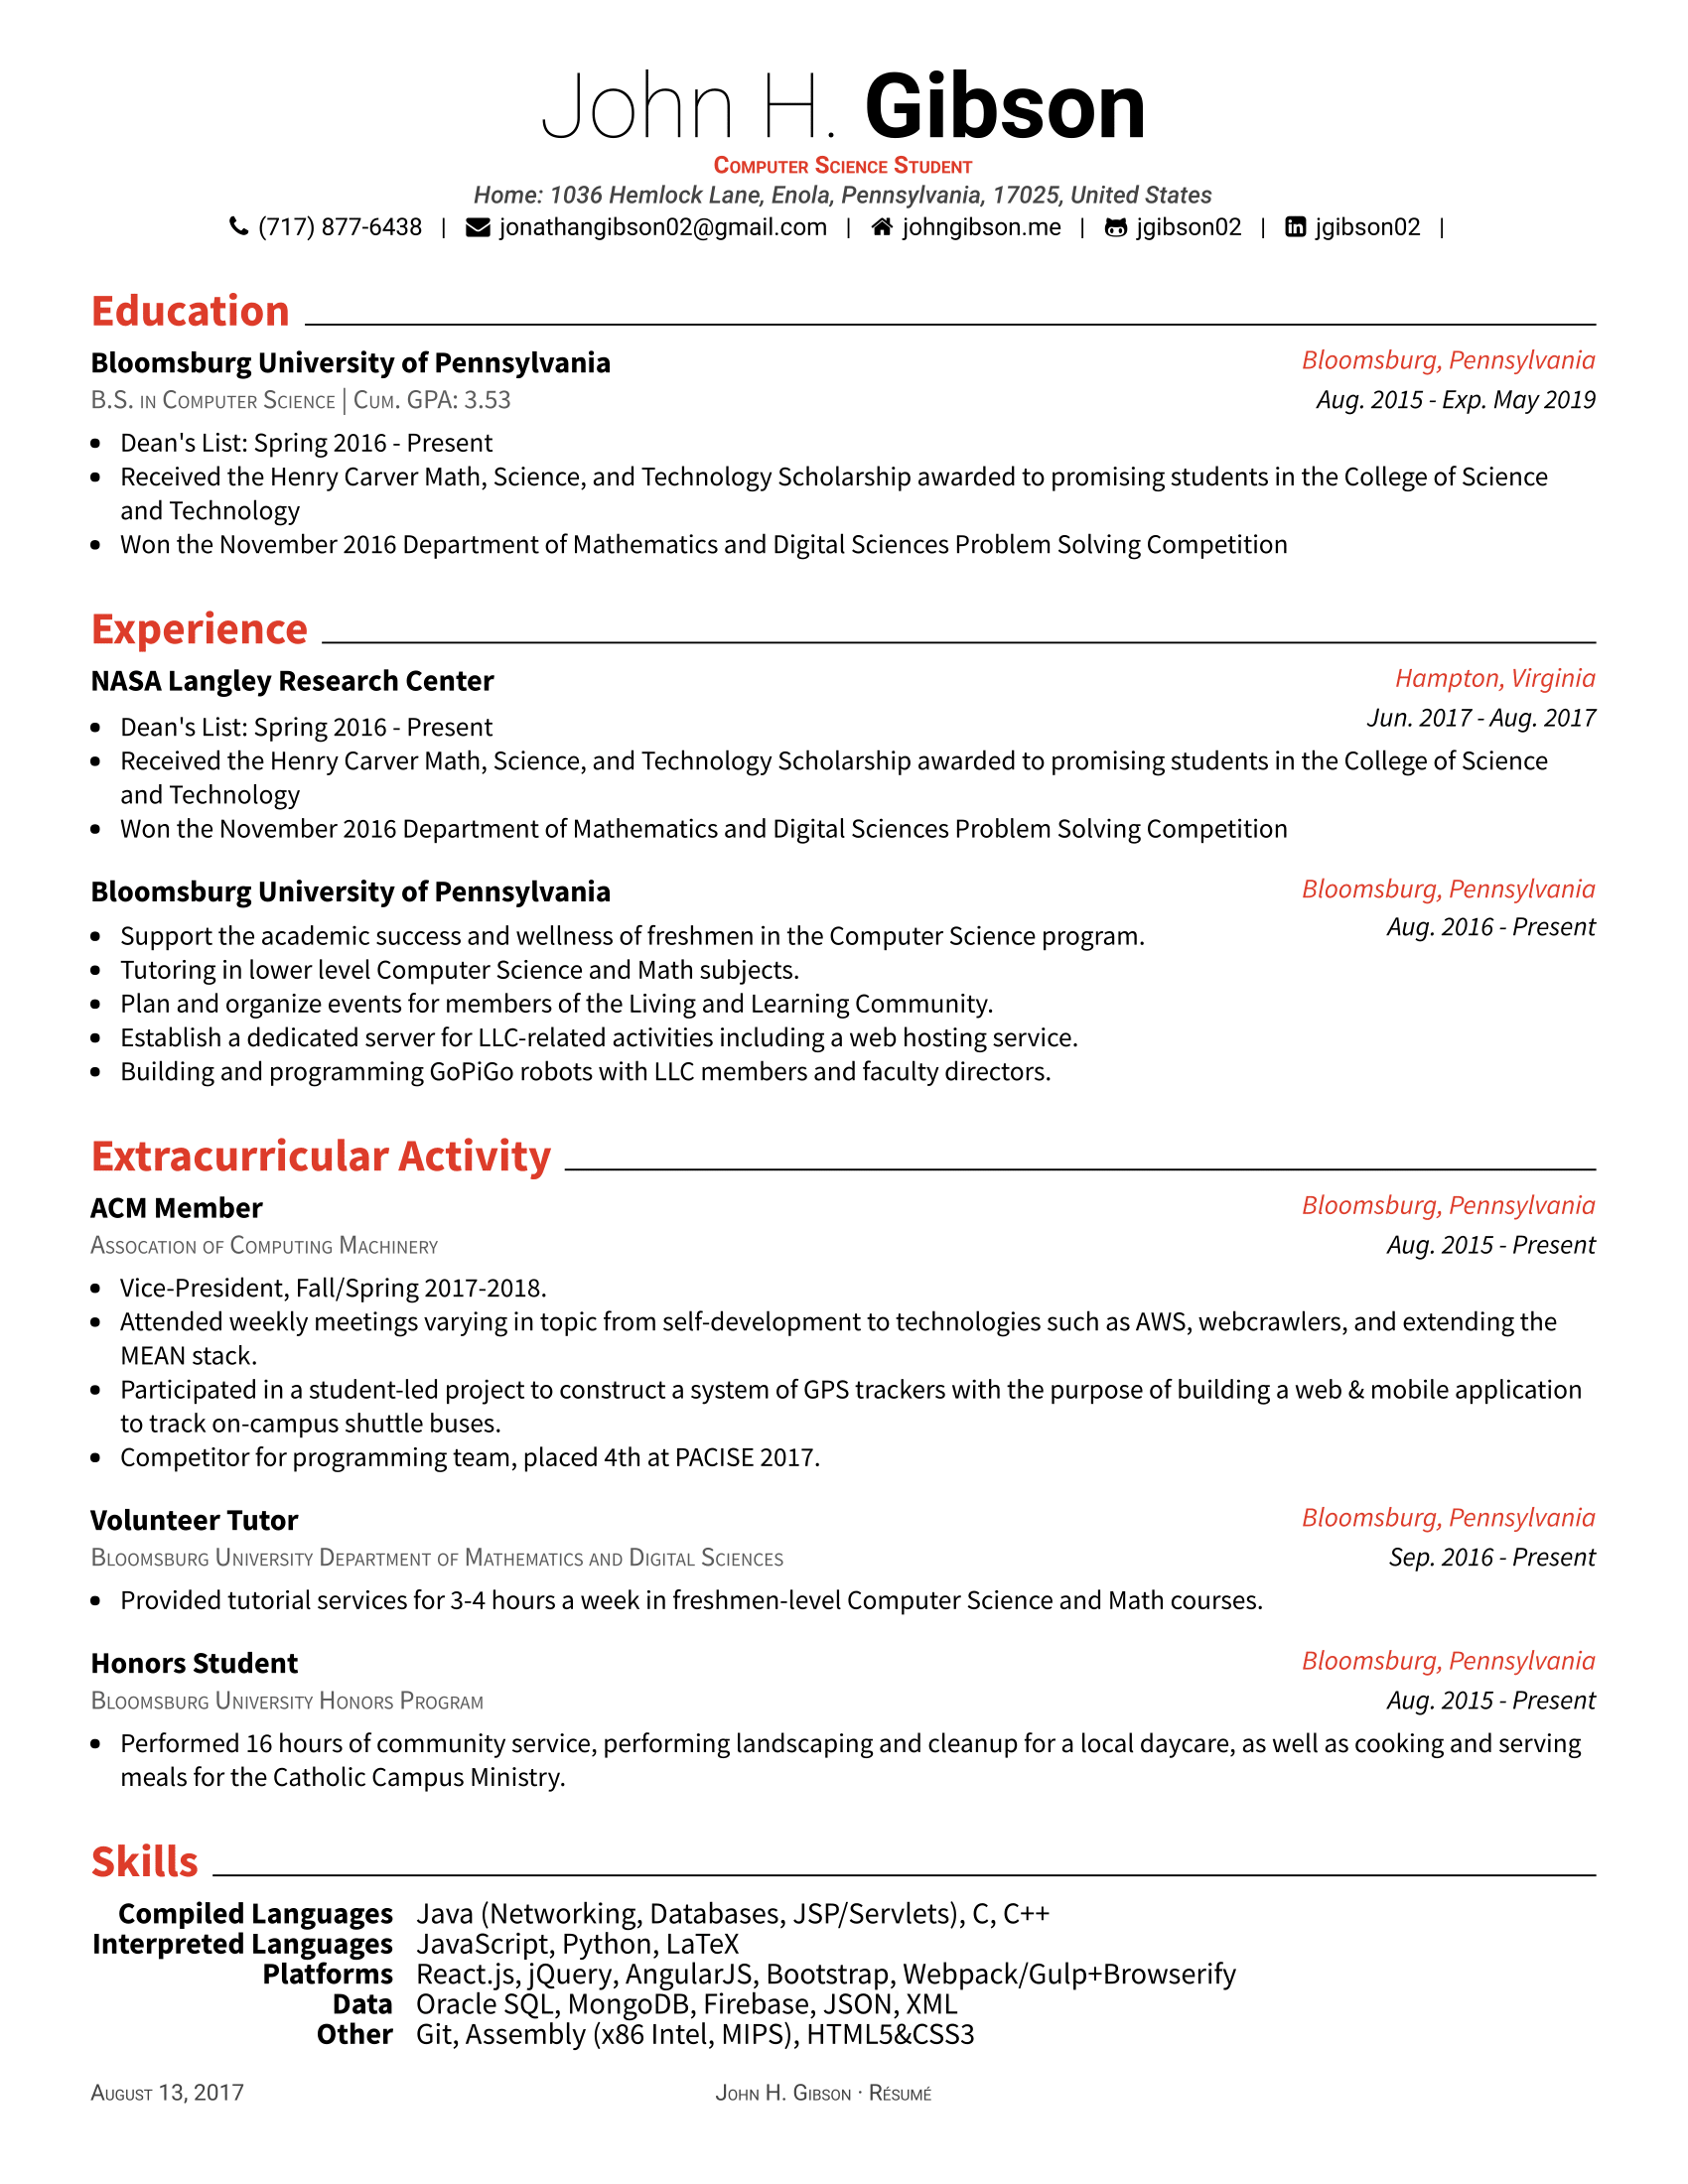 Original Template Posquit0 Awesome CV